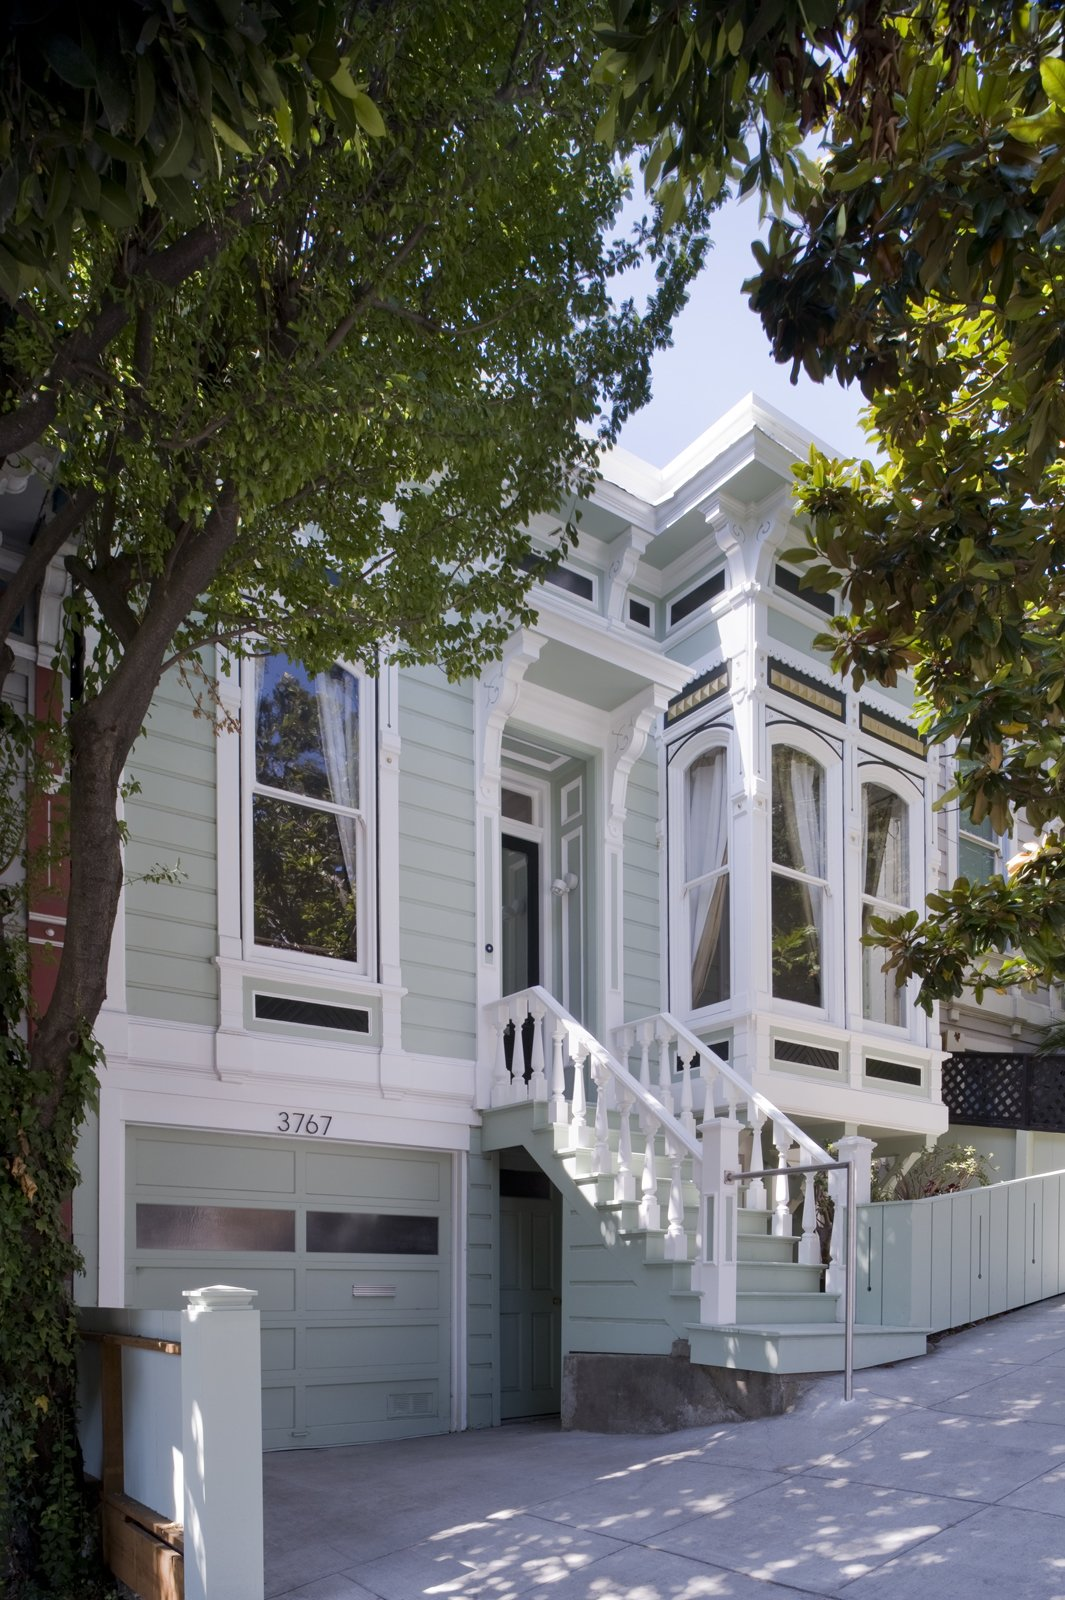 """In 2006, when couple Barnaby Grist and Ellen Goldberg hired Bassel Samaha and Heather Hart, of Samaha + Hart Architecture, they came to the husband-wife design team with big plans. The couple wanted to keep the existing facade as well as the two rooms that flanked the front door true to their early-1900s design, but completely renovate the rest in a modern style. """"They were pretty adventurous,"""" Samaha recalls. """"They wanted what was new to be really different.""""  Photo courtesy of Samaha + Hart Architecture  Photo 1 of 17 in Noe Valley Renovation"""